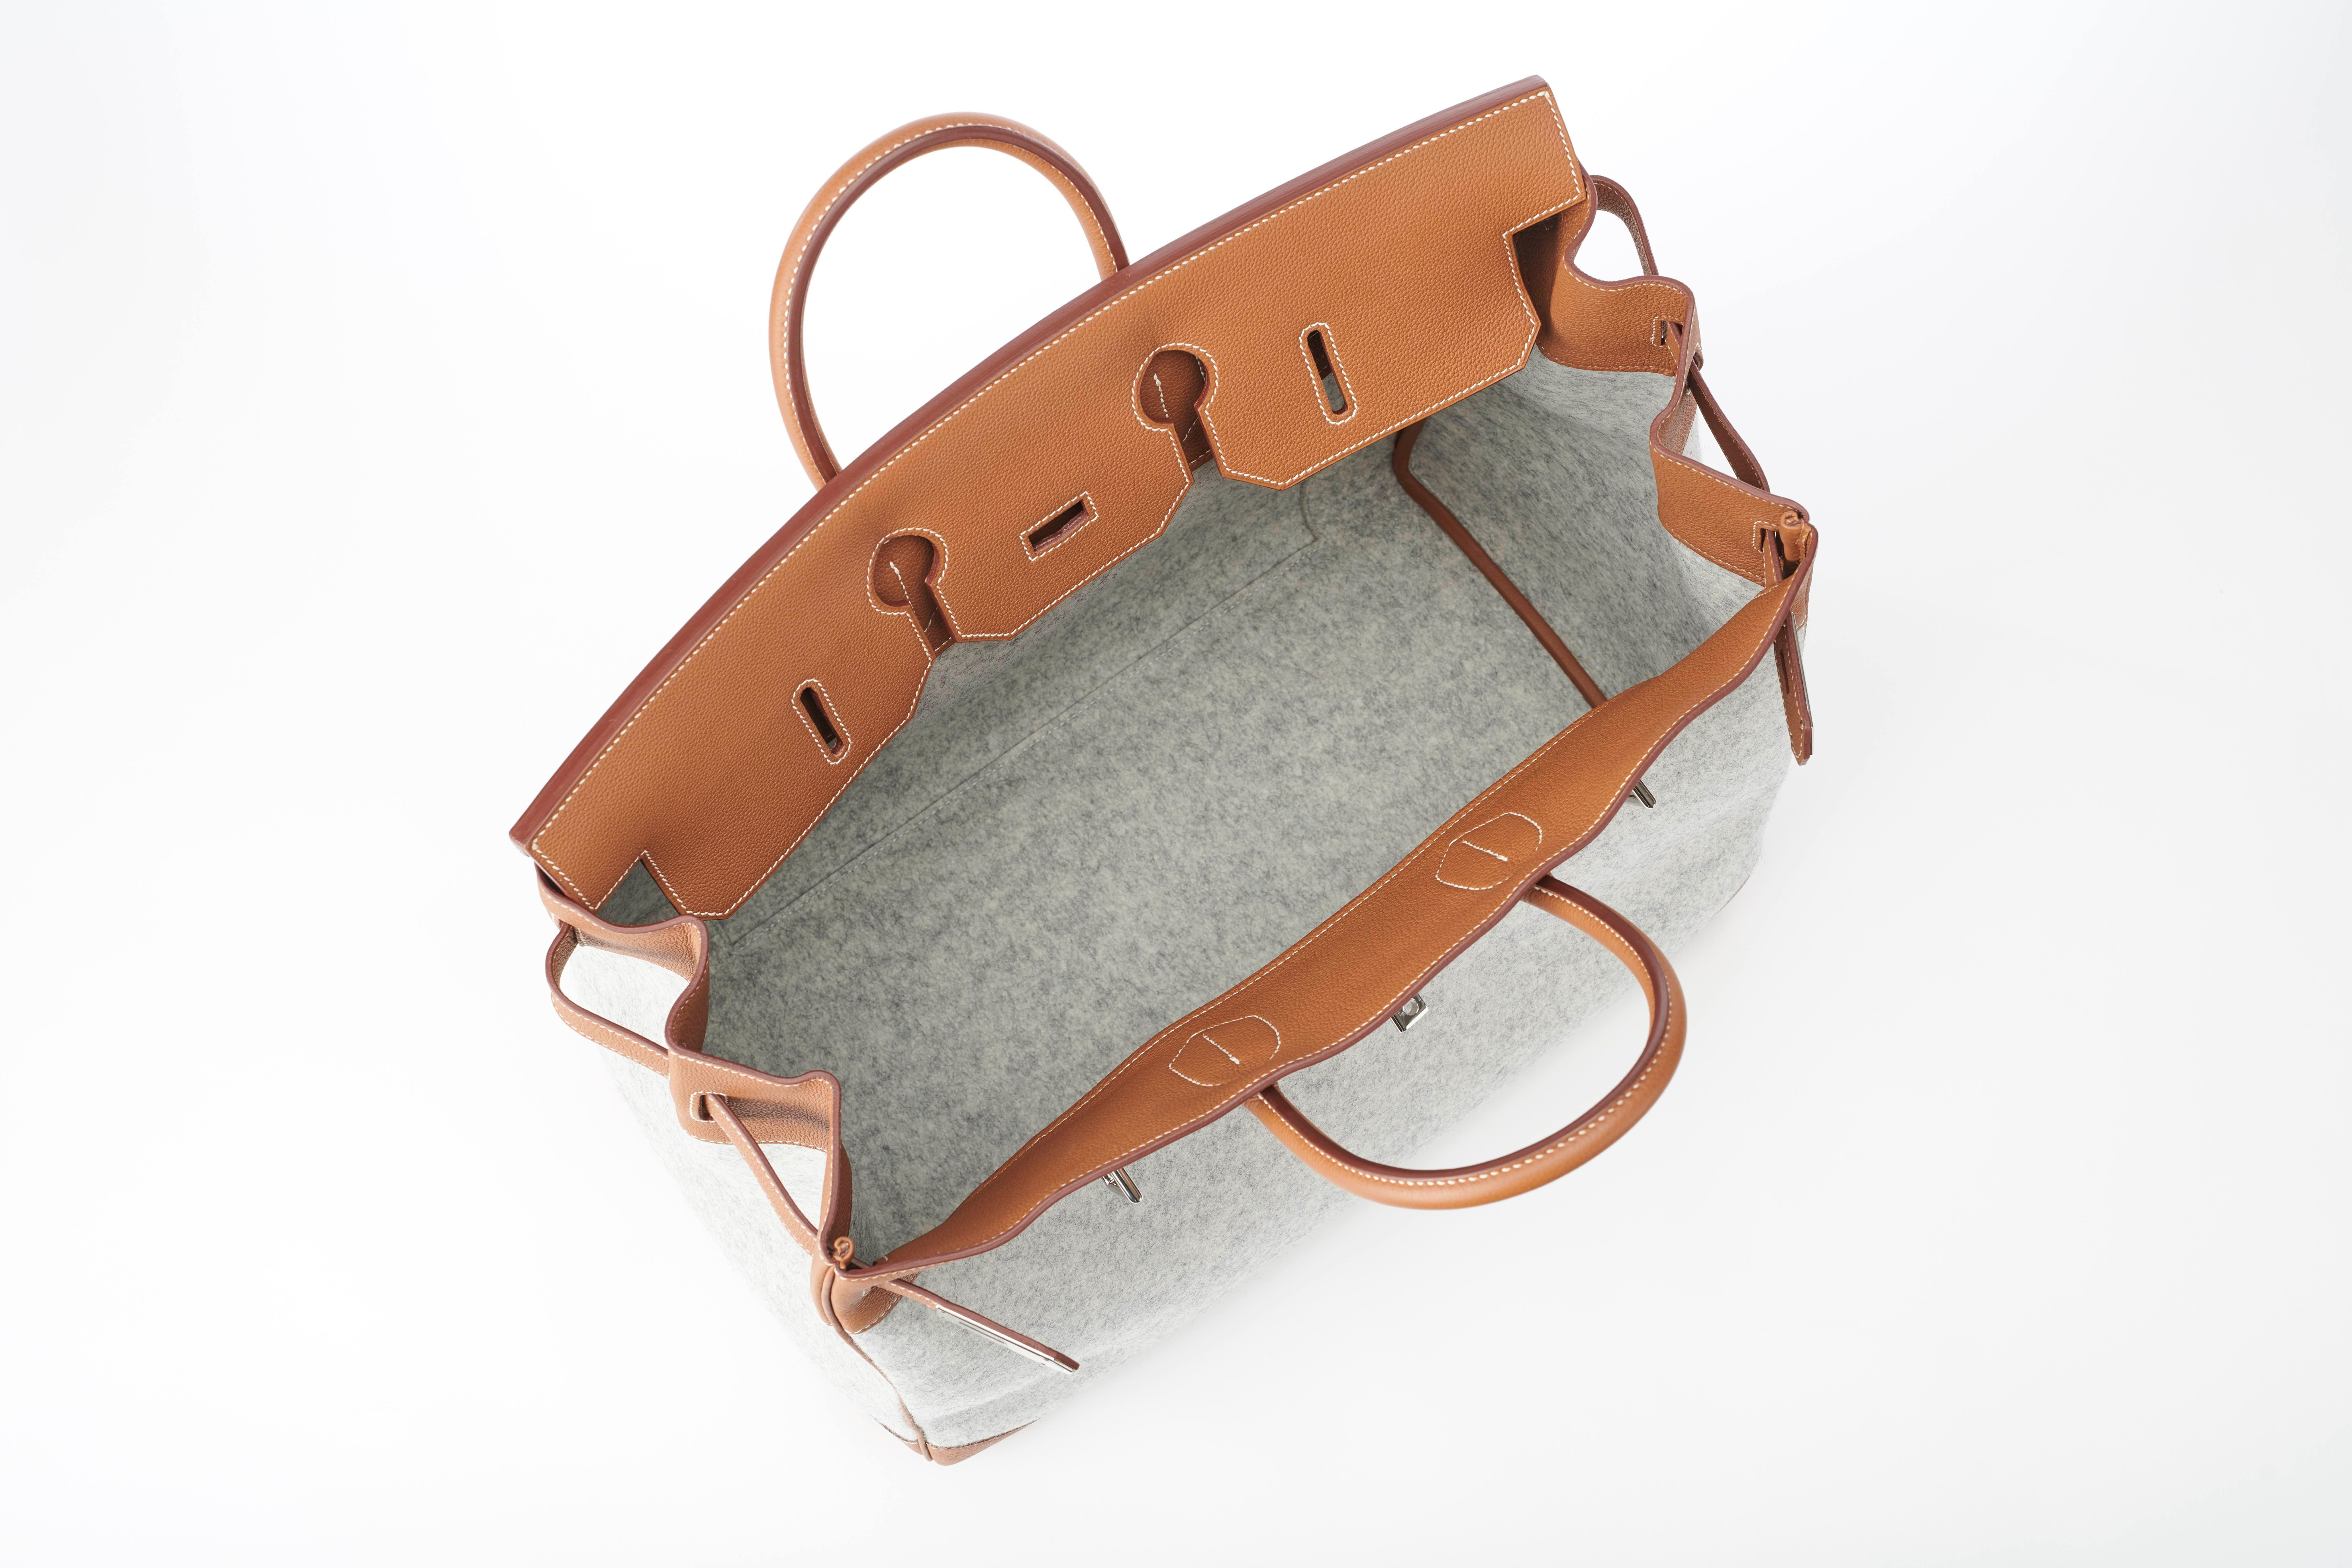 5399692afa28 Hermes Birkin HAC 50cm TODOO in Gold Togo leather and Gris Clair Wool Felt  For Sale at 1stdibs